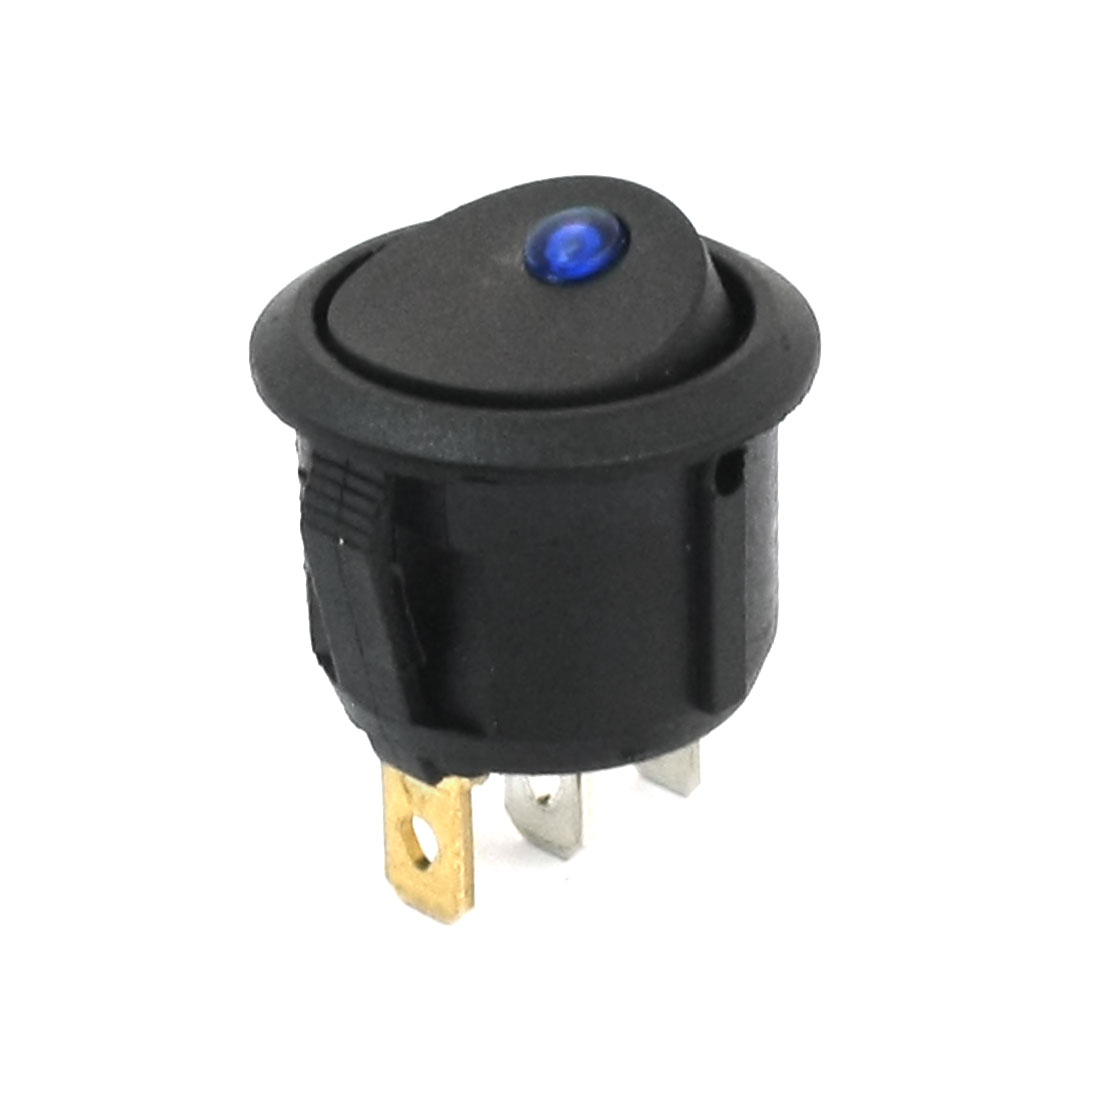 Car Auto Blue Pilot Light SPST 2 Position ON/OFF 3 Pin Snap In Round Boat Rocker Switch DC 12V